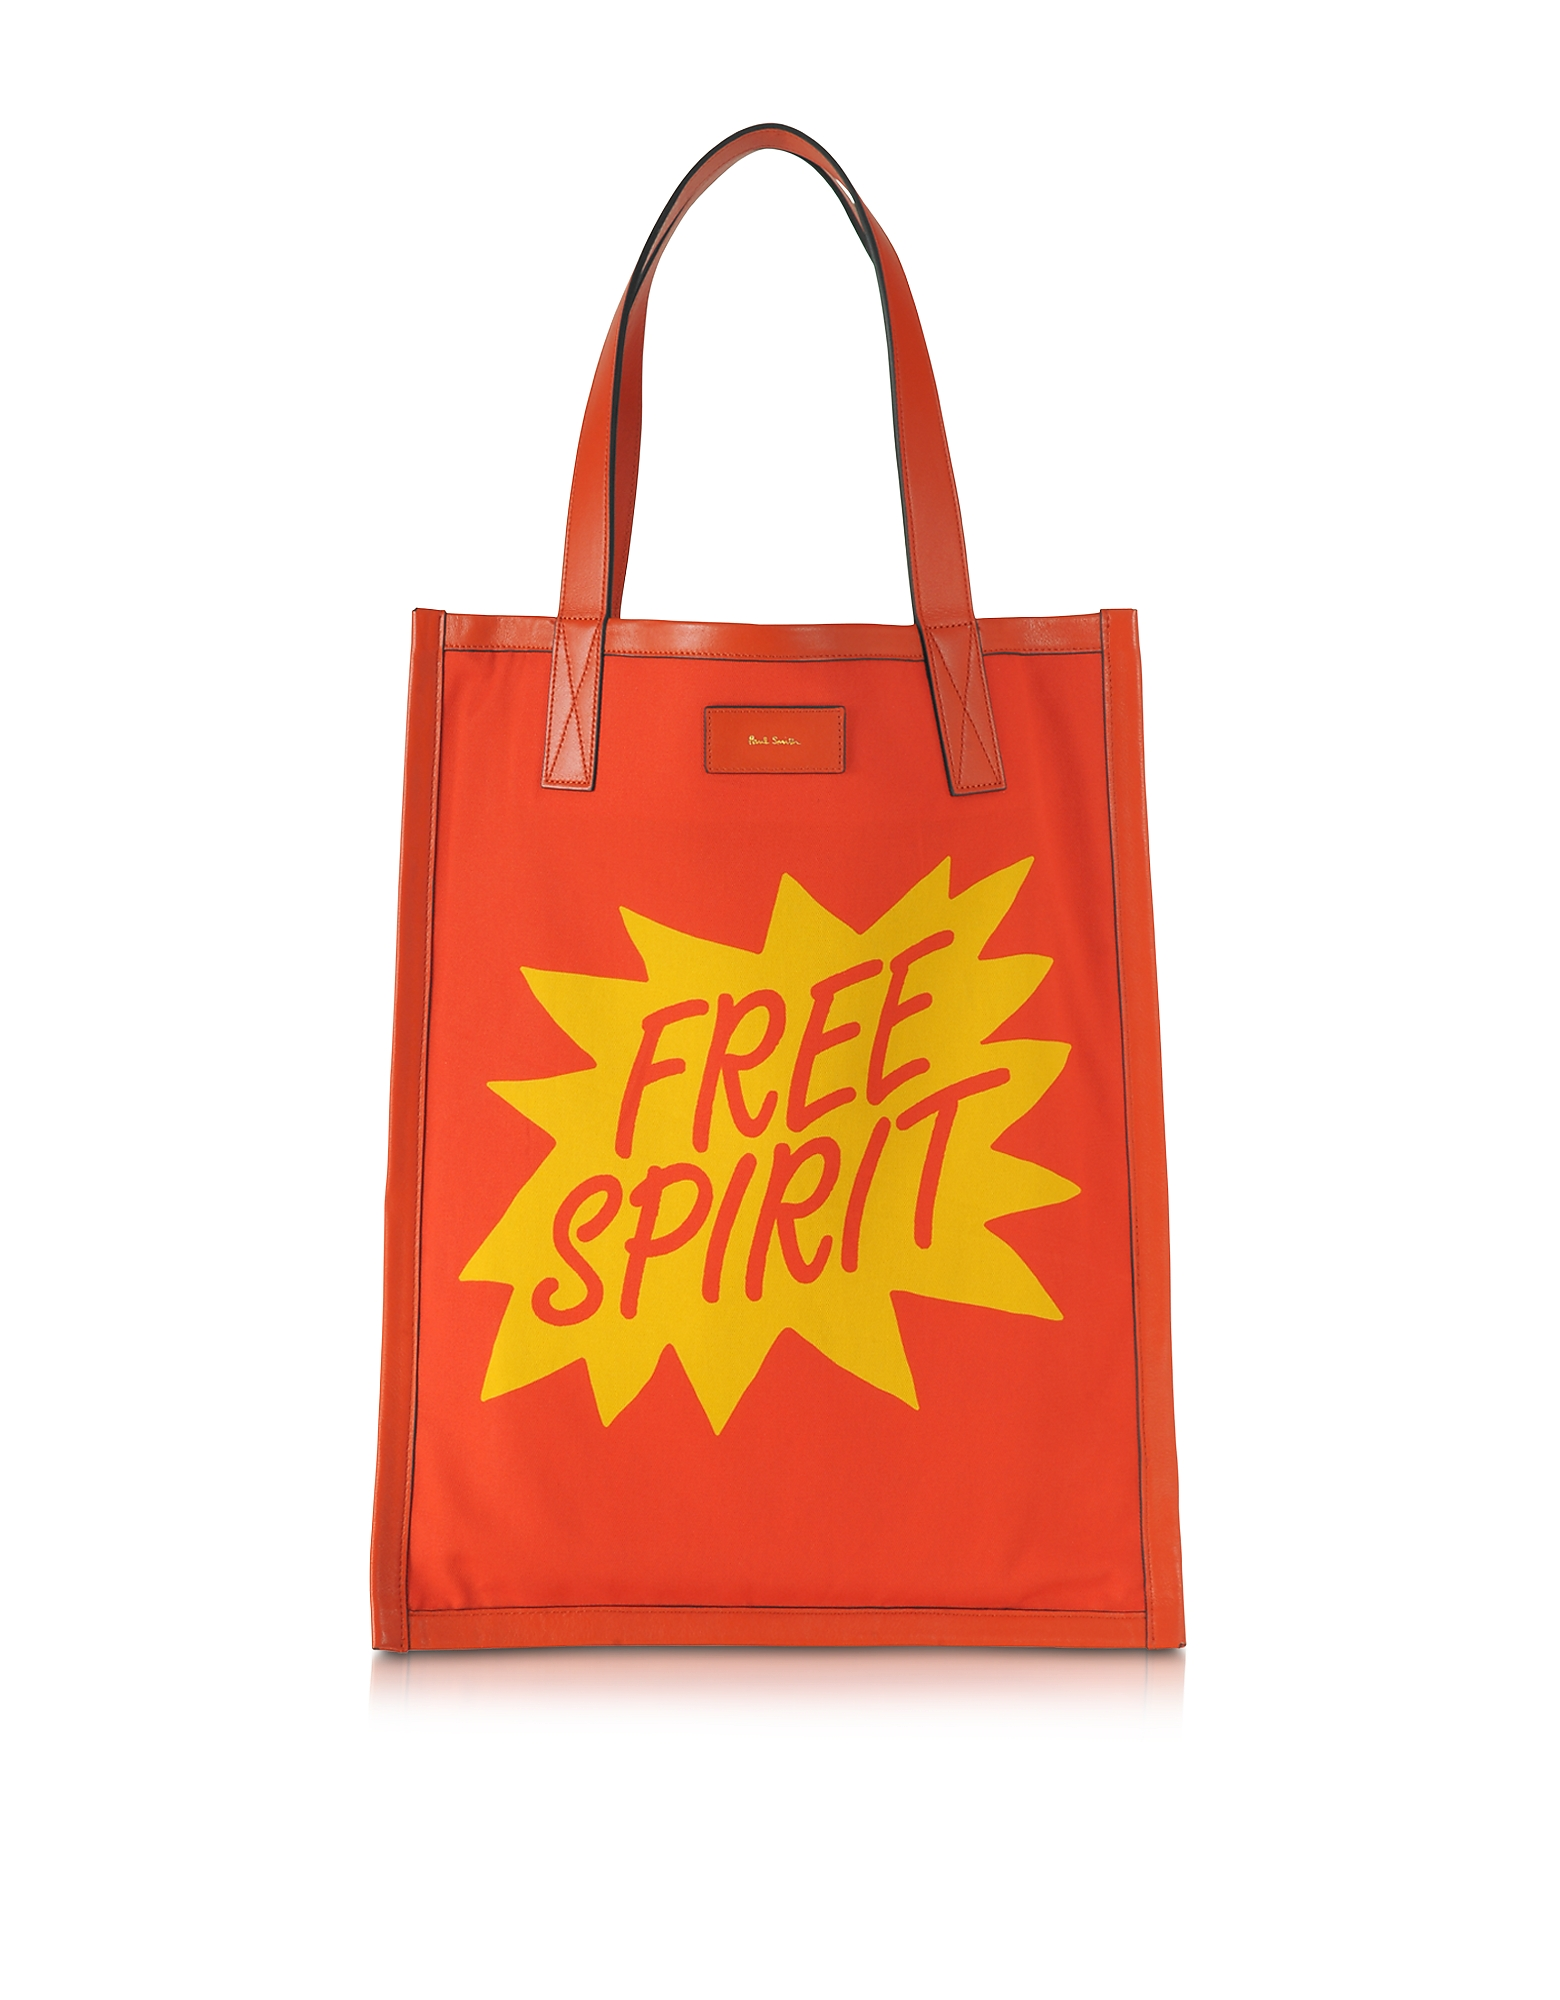 Paul Smith Men's Bags, Men's Orange and Yellow Free Spirit Print Tote Bag